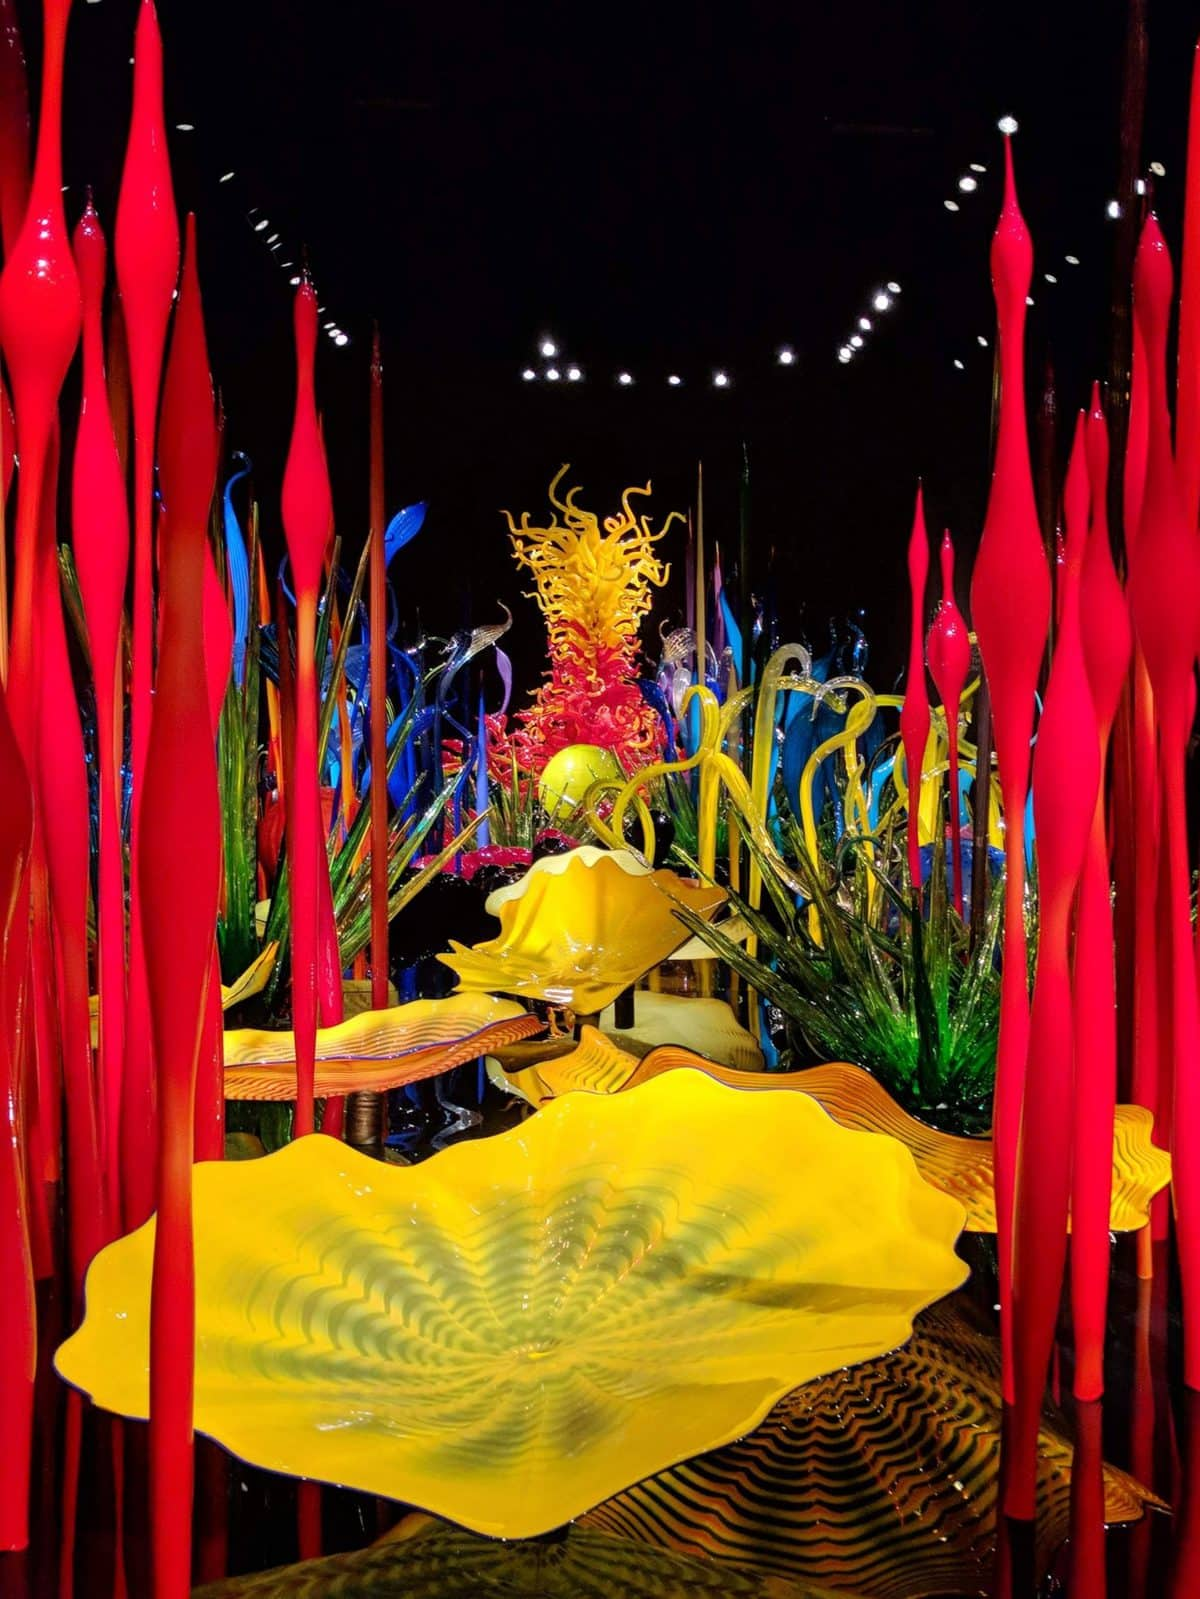 Indoor garden made of blown glass at Chihuly Garden and Glass